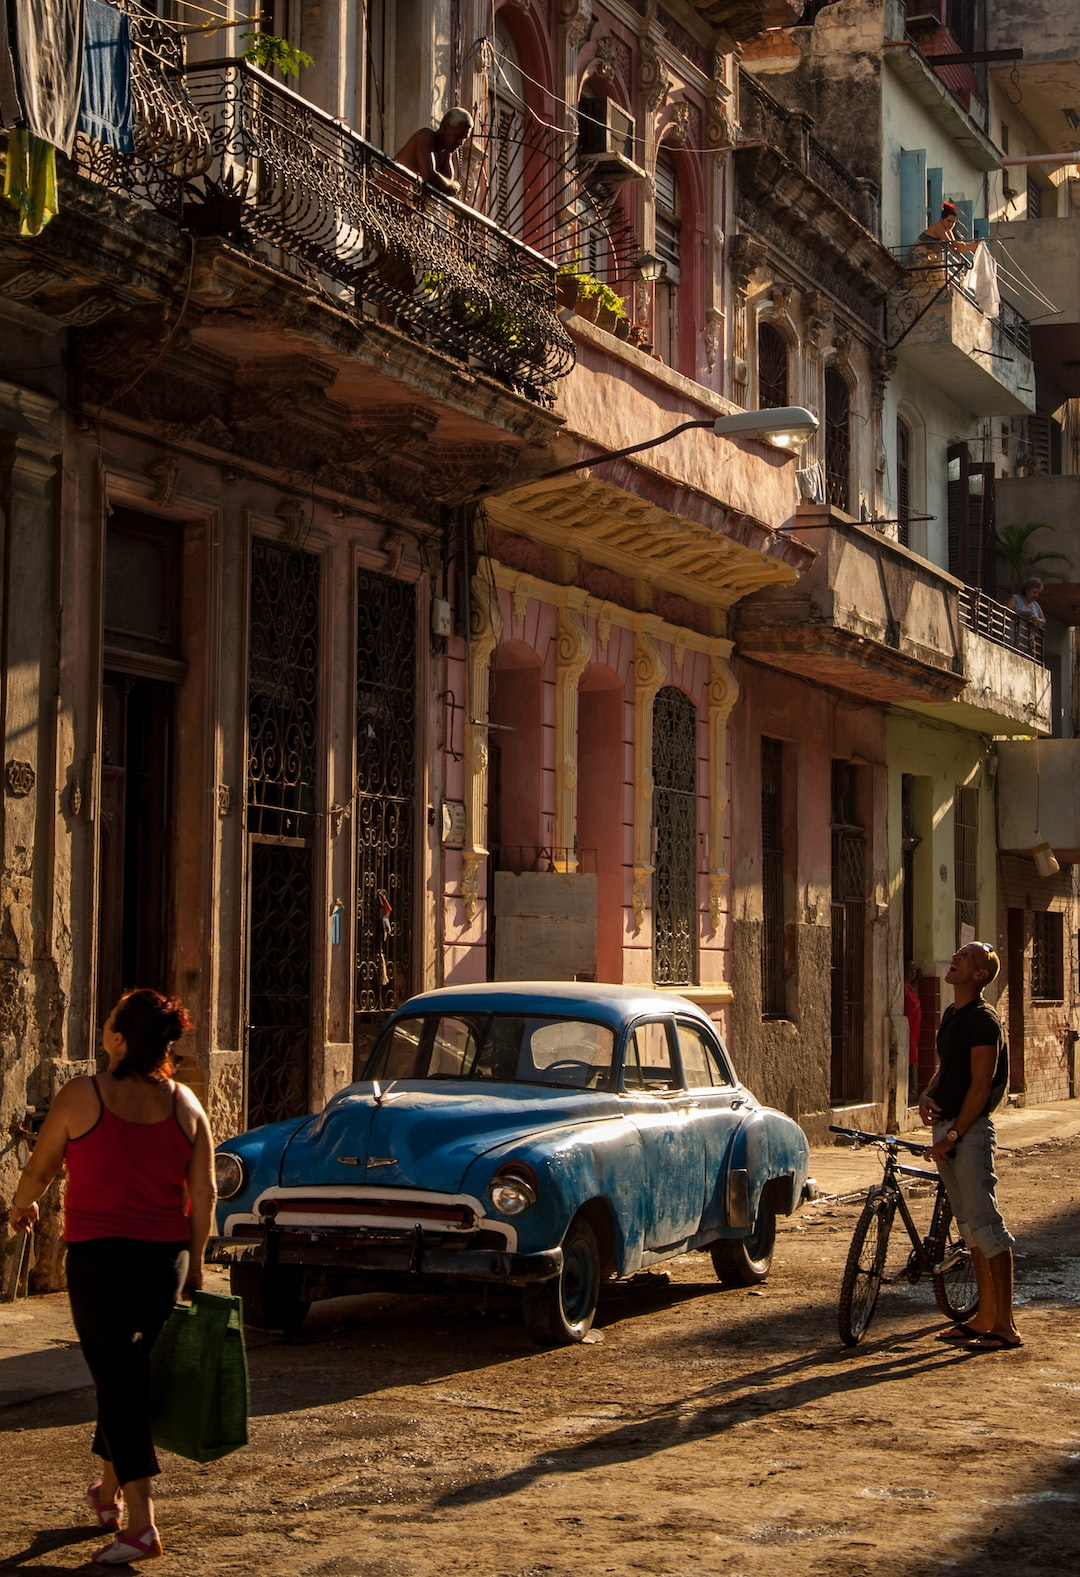 Locals, Architecture, Classic Car and Golden Light make up this travel stock image of Old Havana